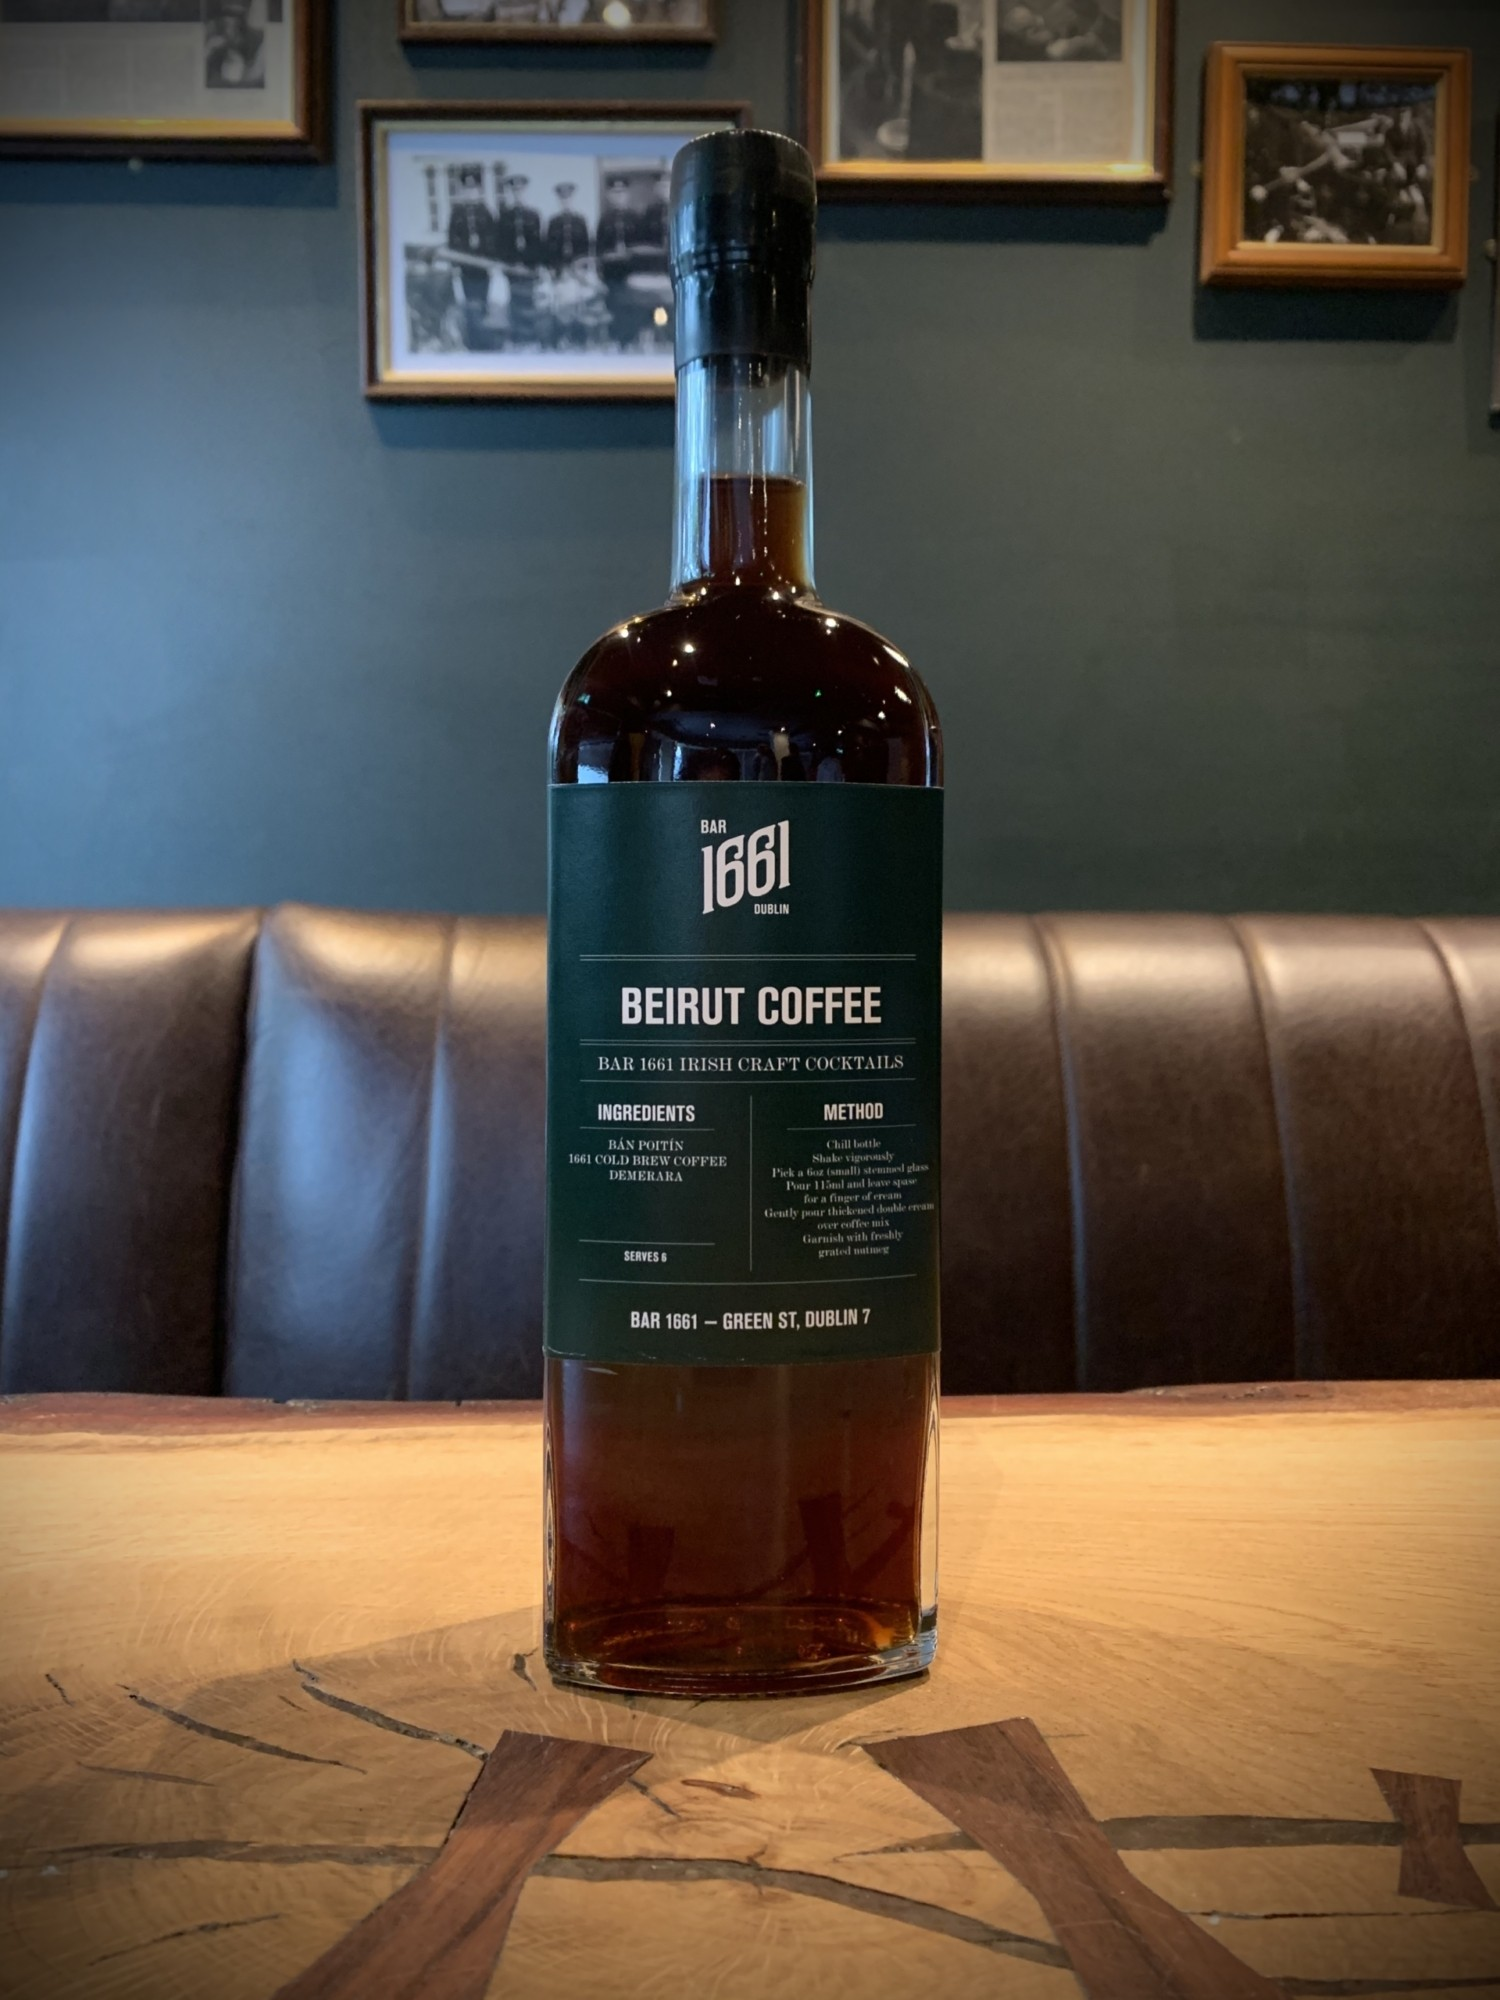 Ireland's Best Cocktail Bar BAR 1661 supports Beirut bar with limited  edition 'Beirut Coffee' Craft Cocktail